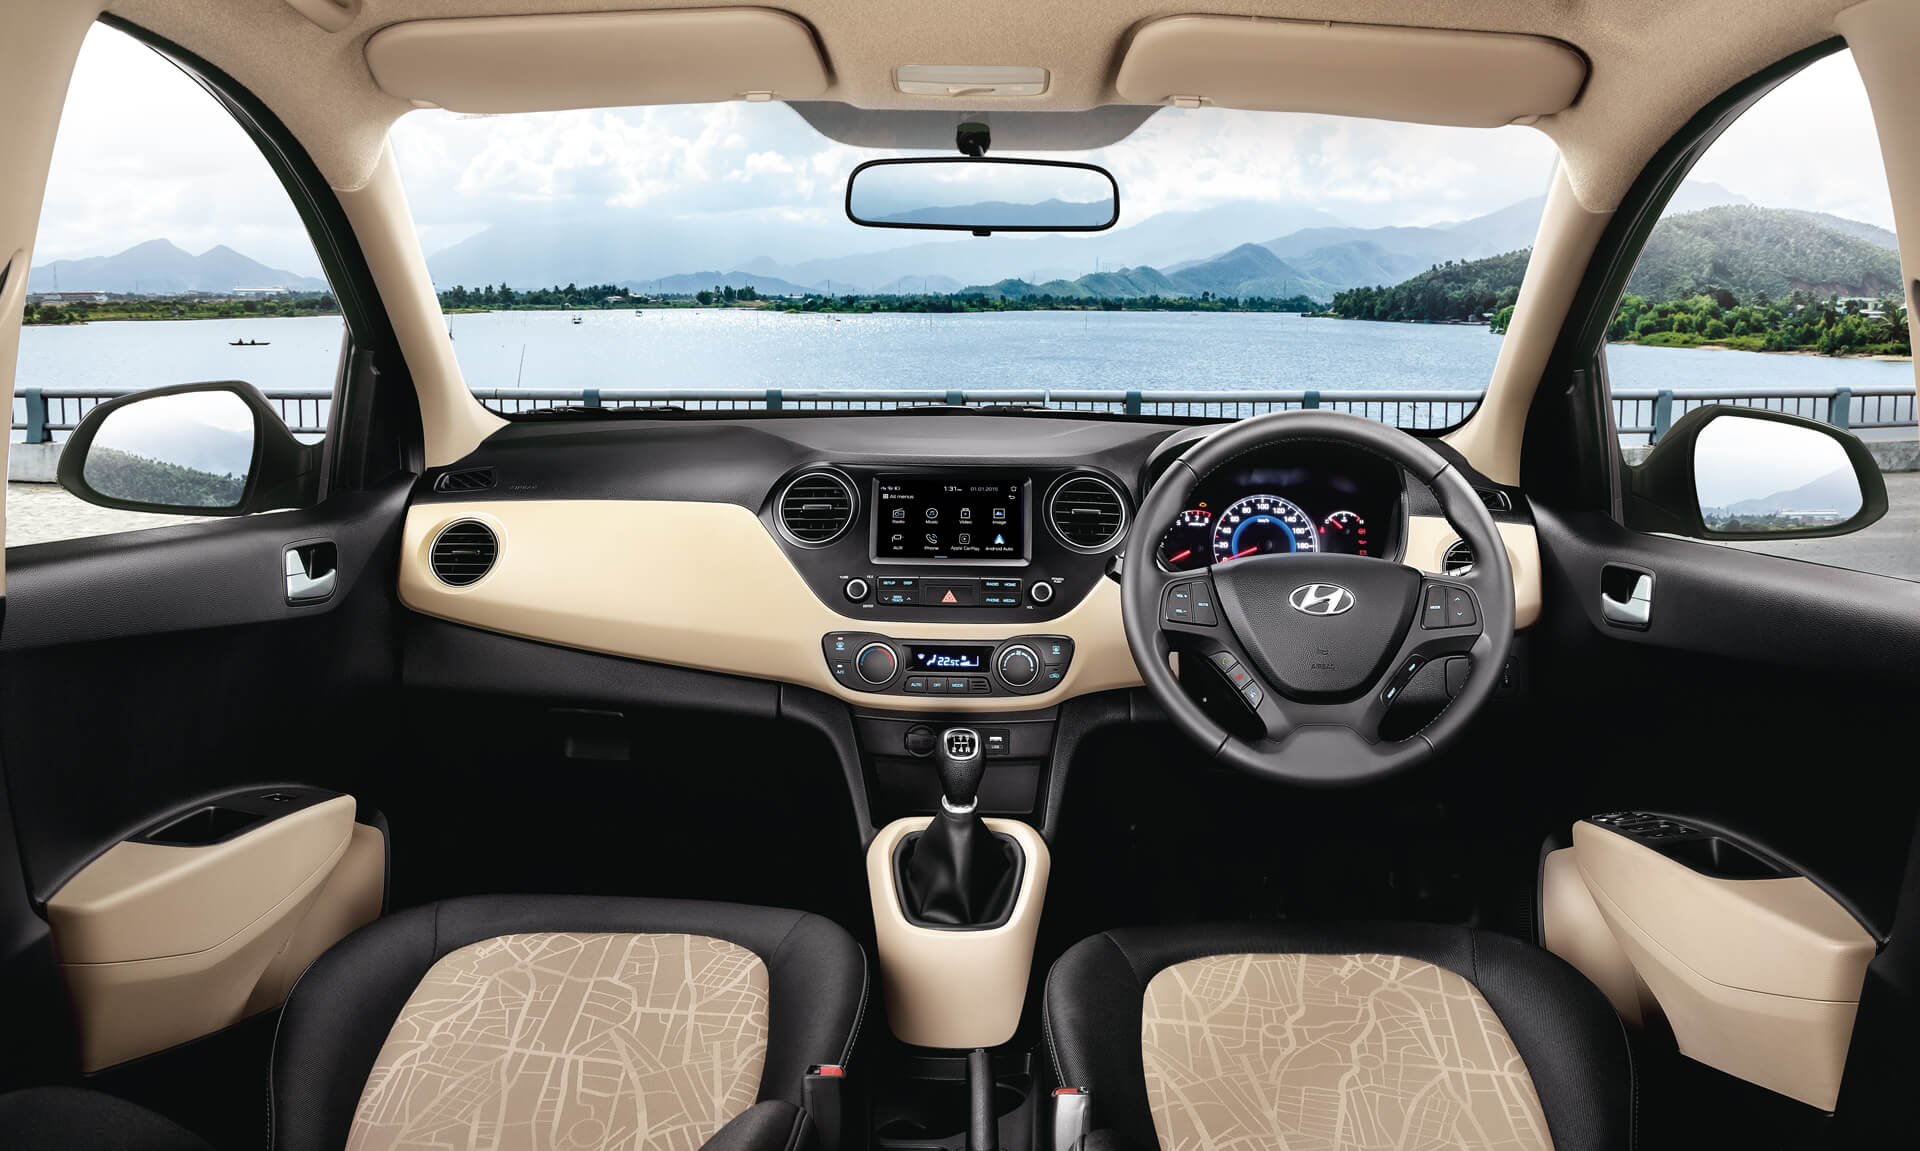 Hyundai Grand i10 Interior Features - Seats (Aerial View)